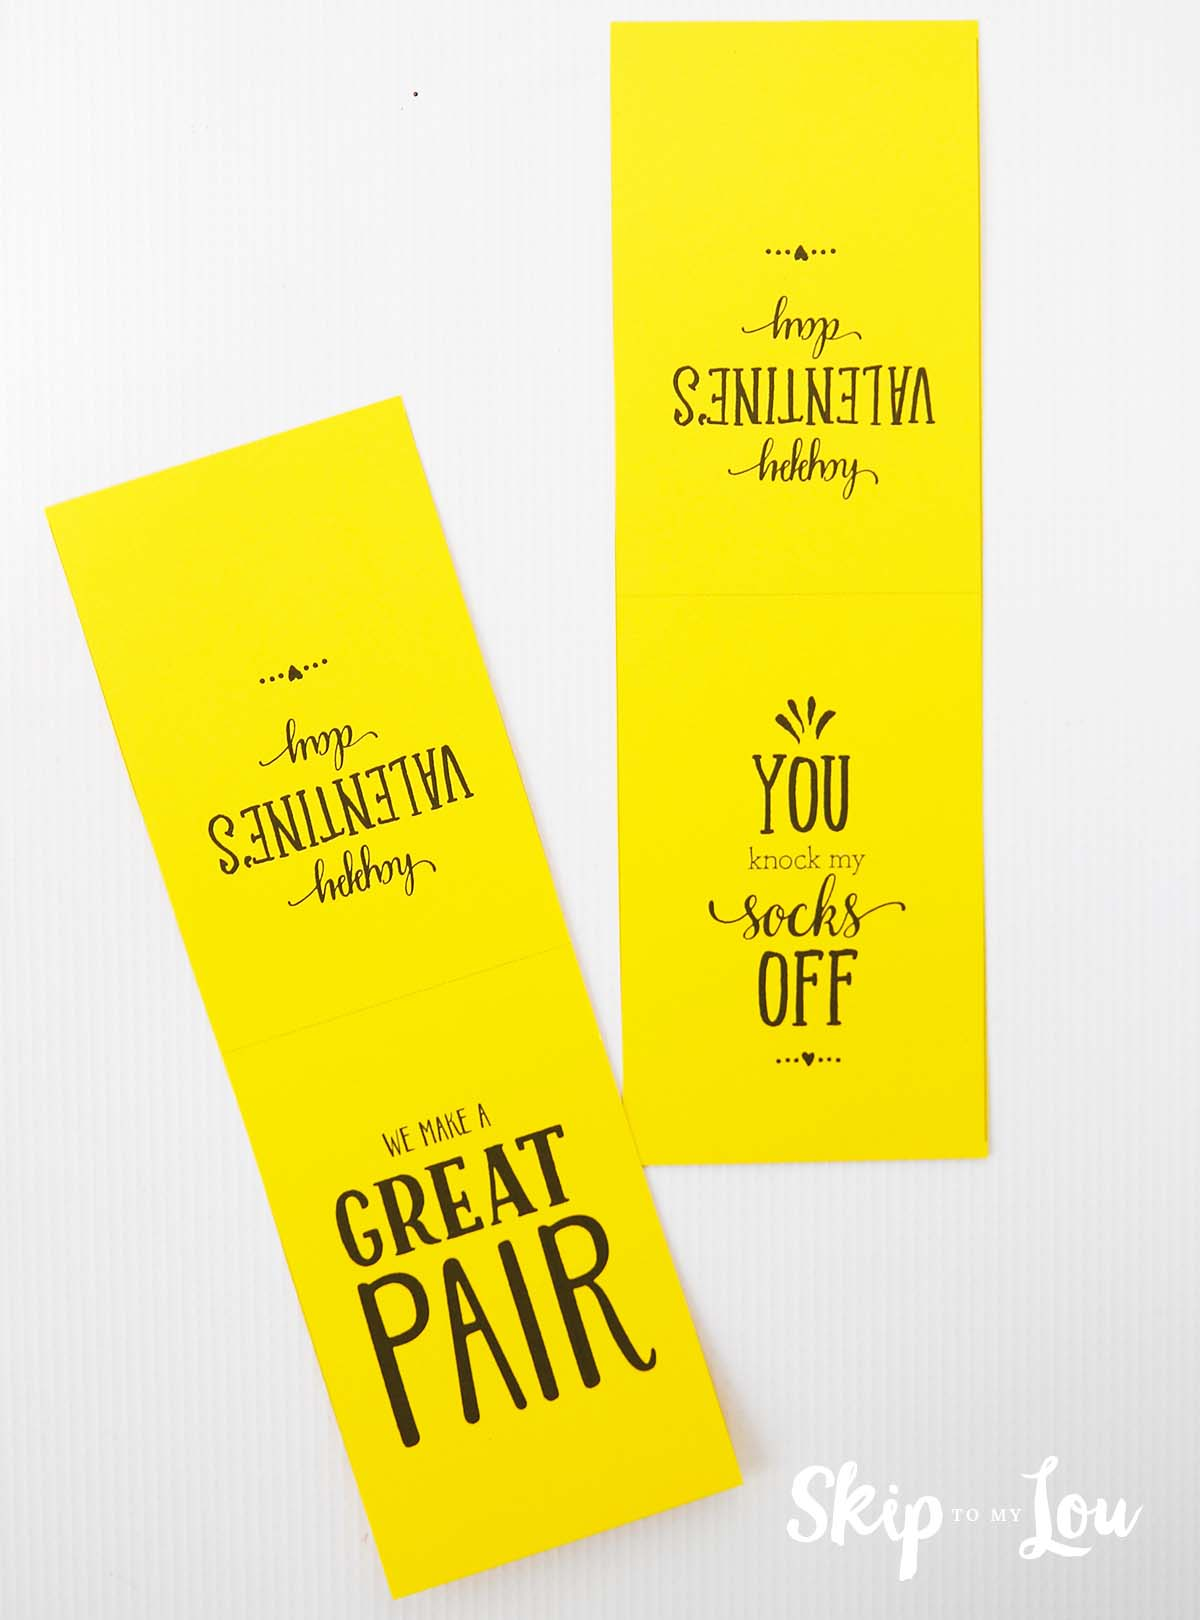 We are a great pair printable Valentine for socks